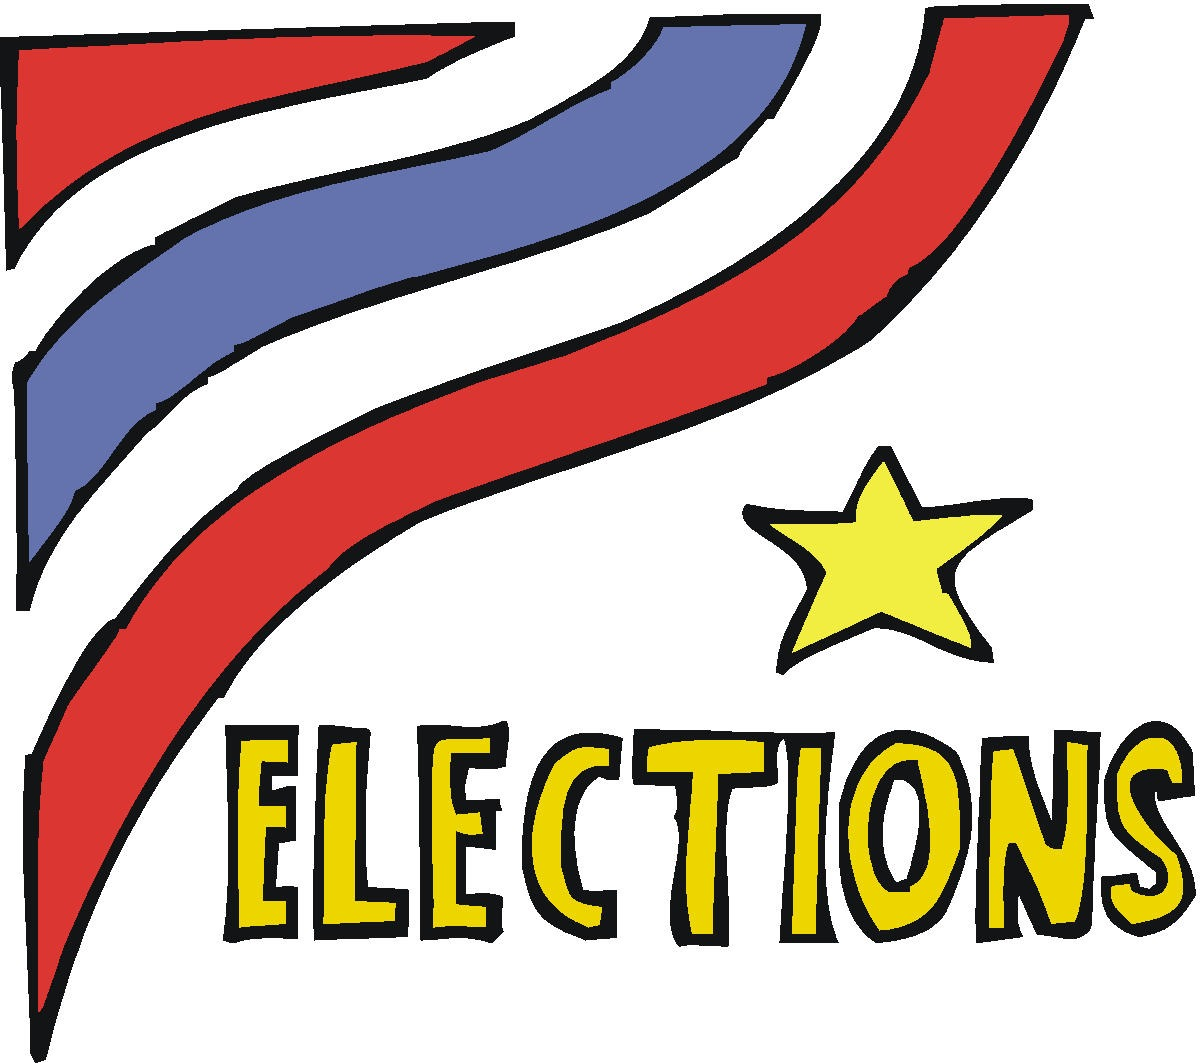 Election Of Officers Clipart